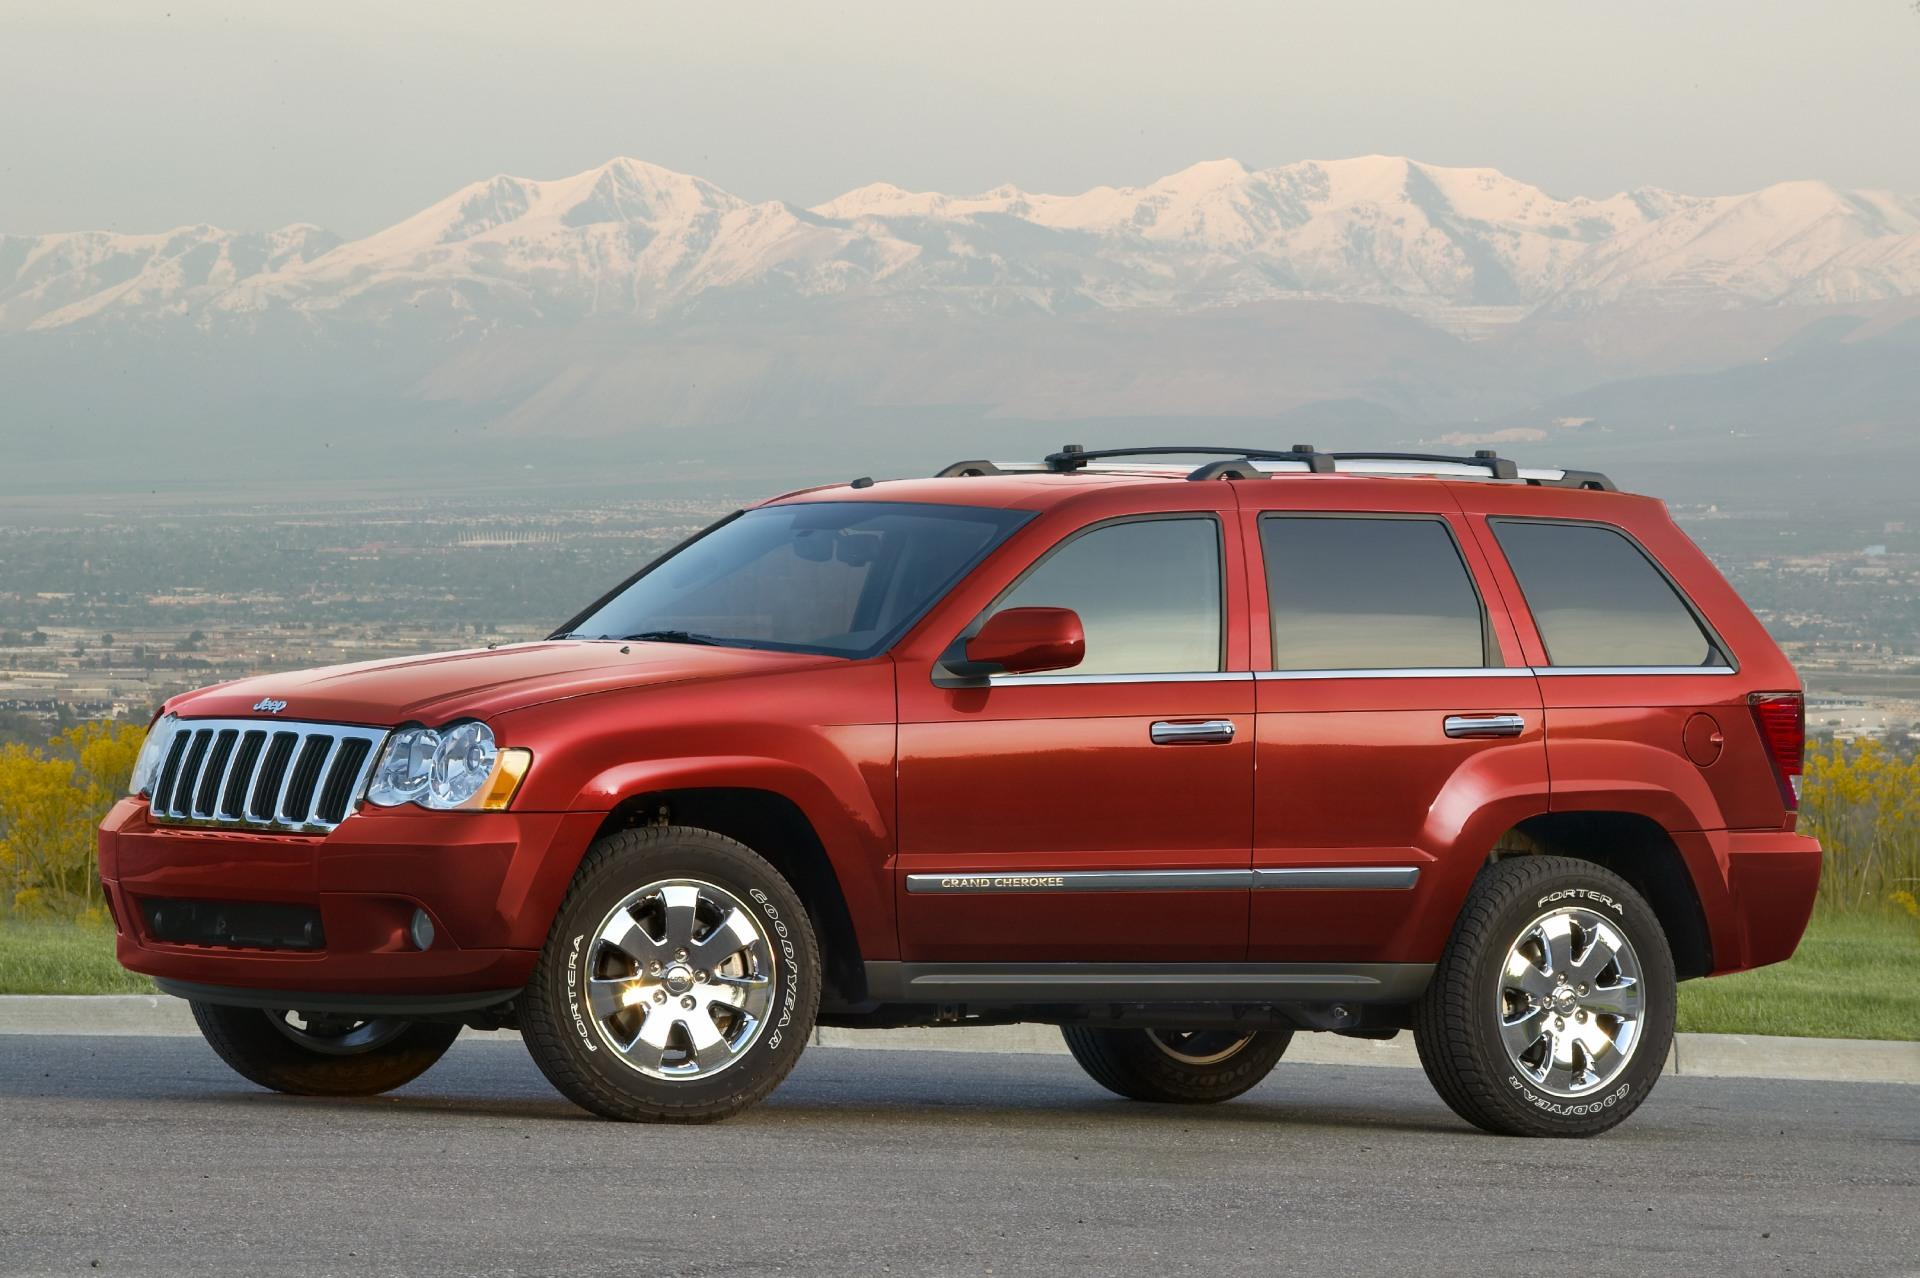 2010 jeep grand cherokee technical specifications and data engine. Cars Review. Best American Auto & Cars Review